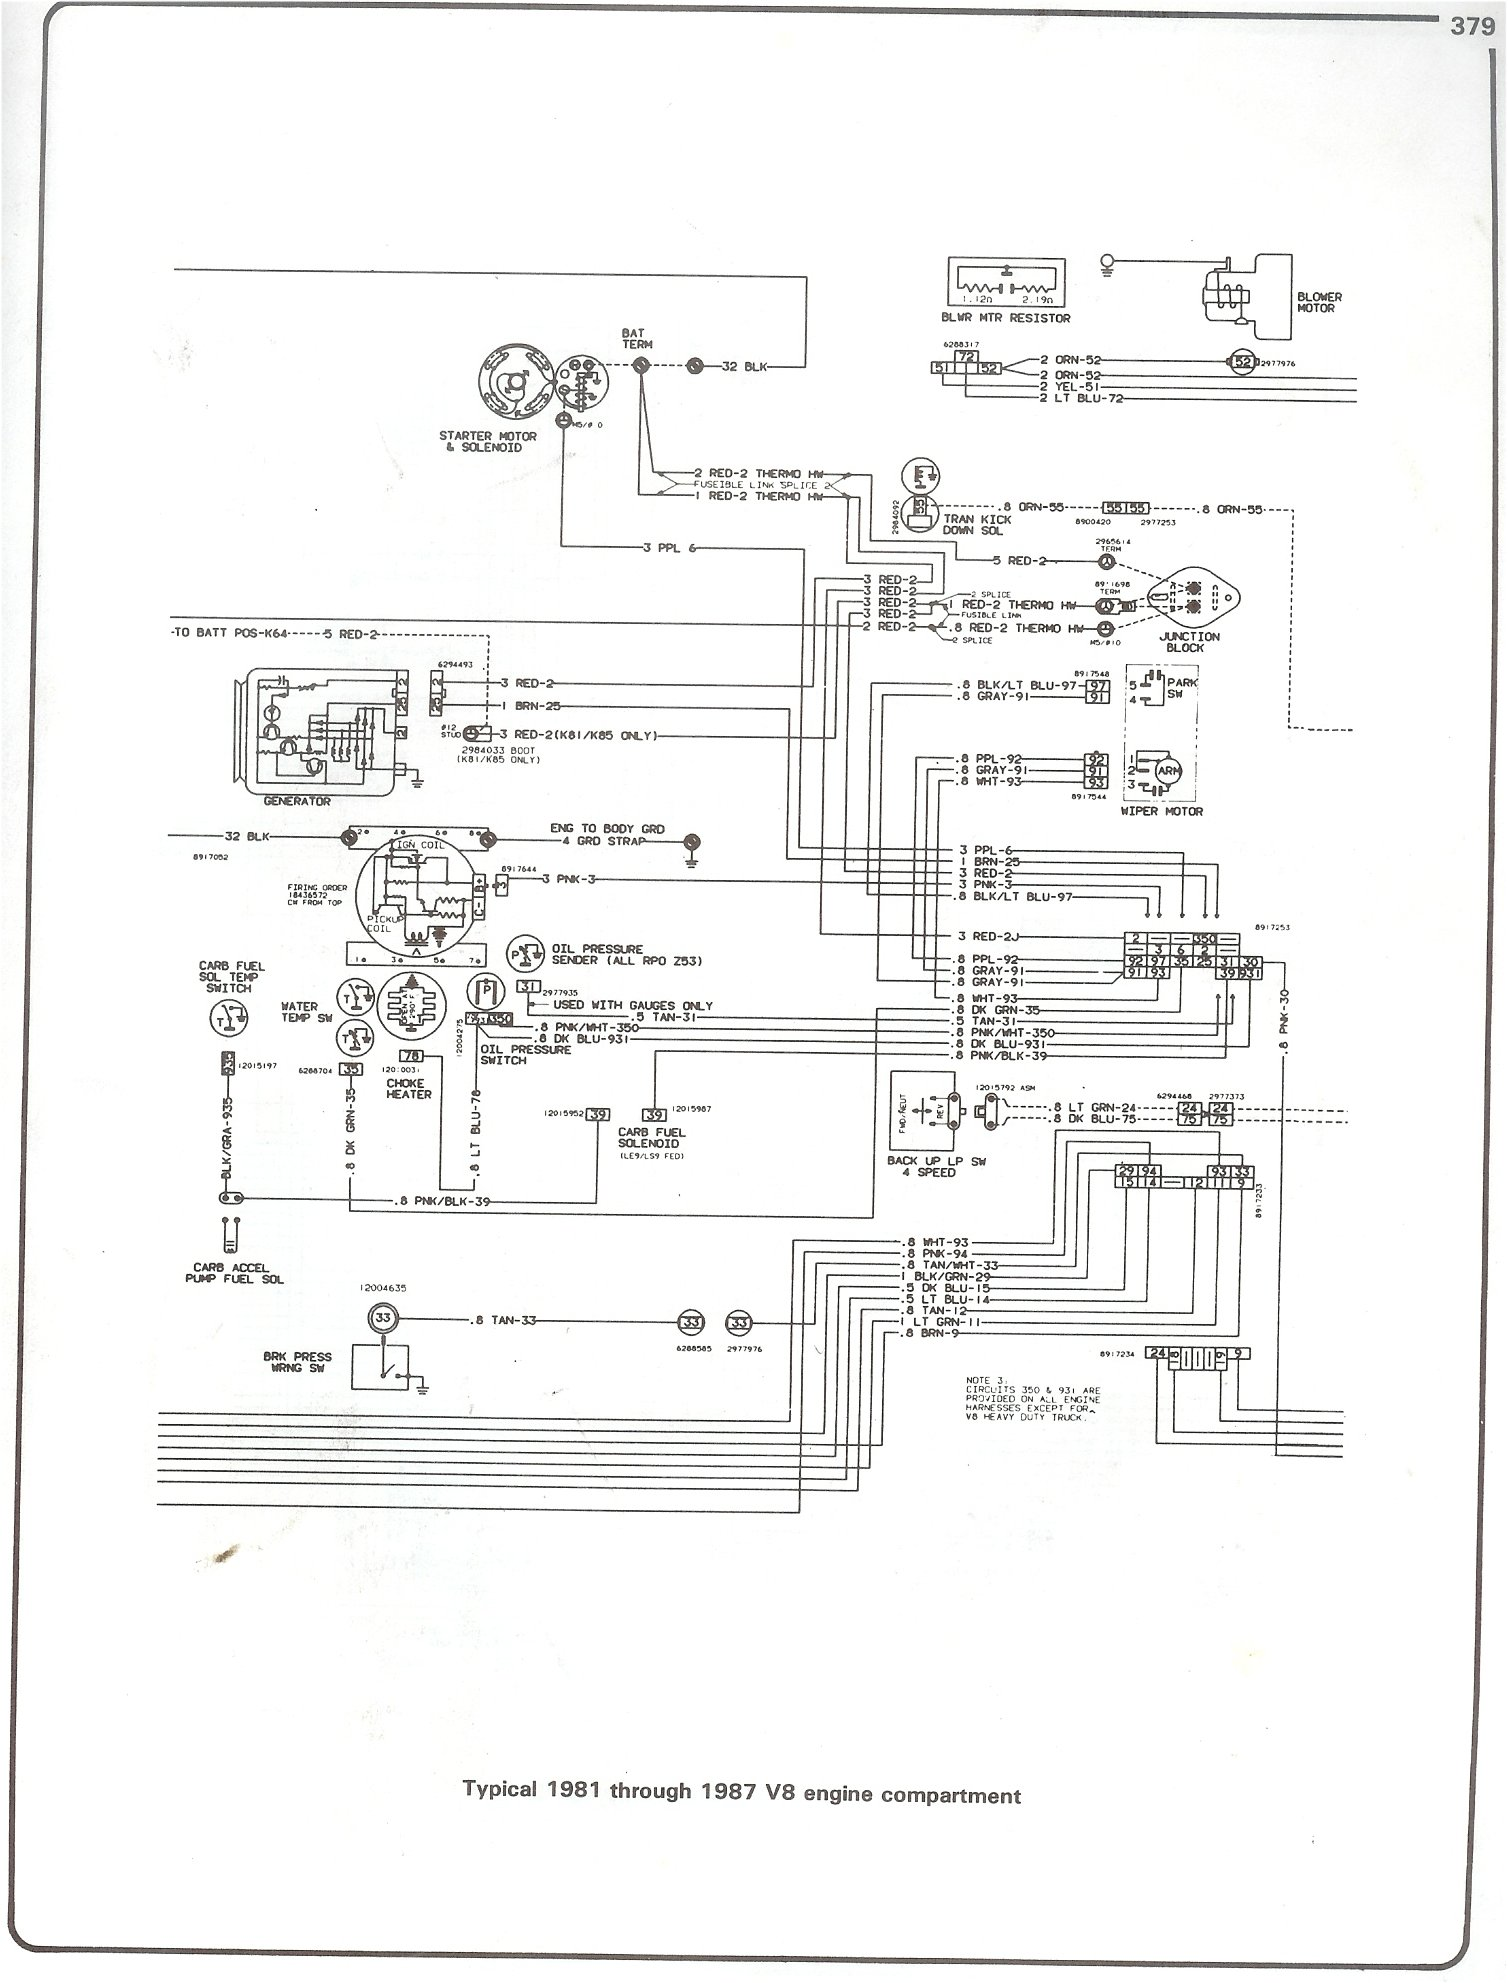 81 87_V8_engine complete 73 87 wiring diagrams 1985 chevy c30 wiring diagram at gsmportal.co